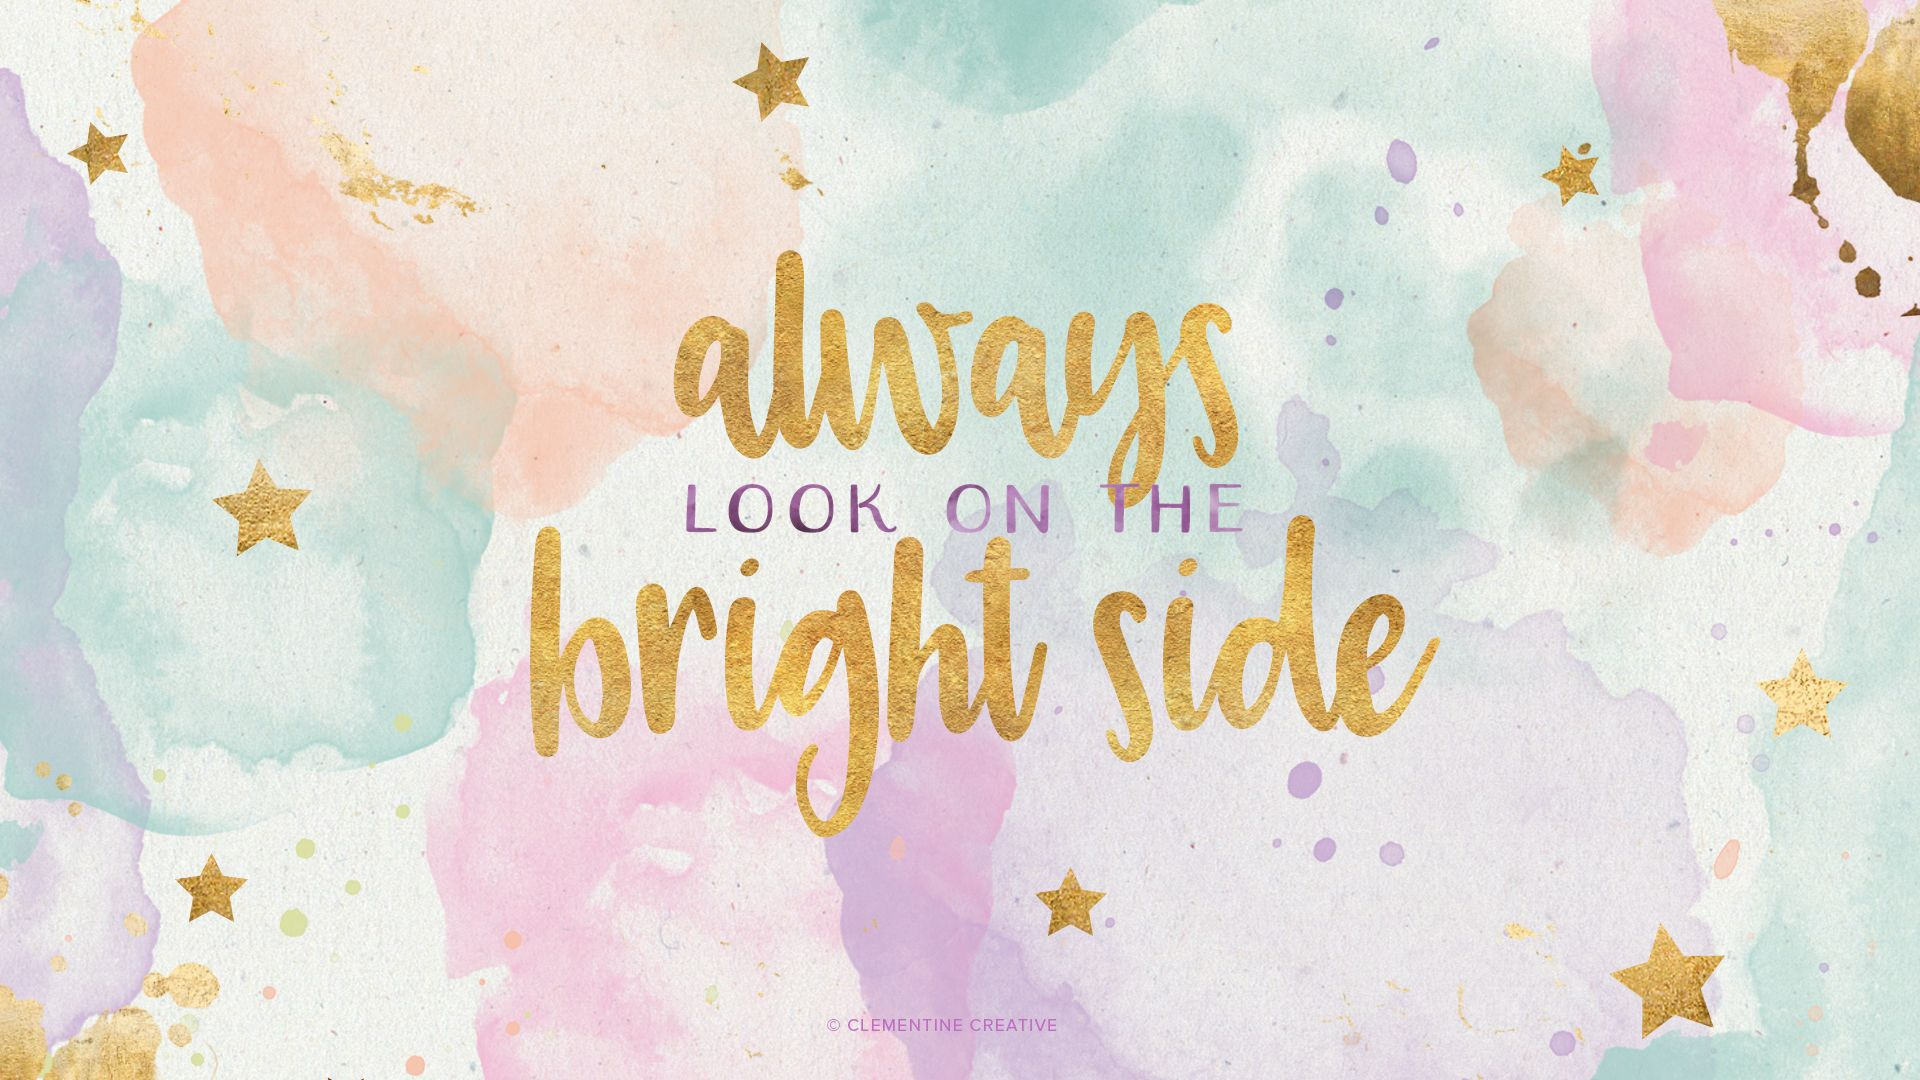 free wallpaper: always look on the bright side | wallpaper, bright